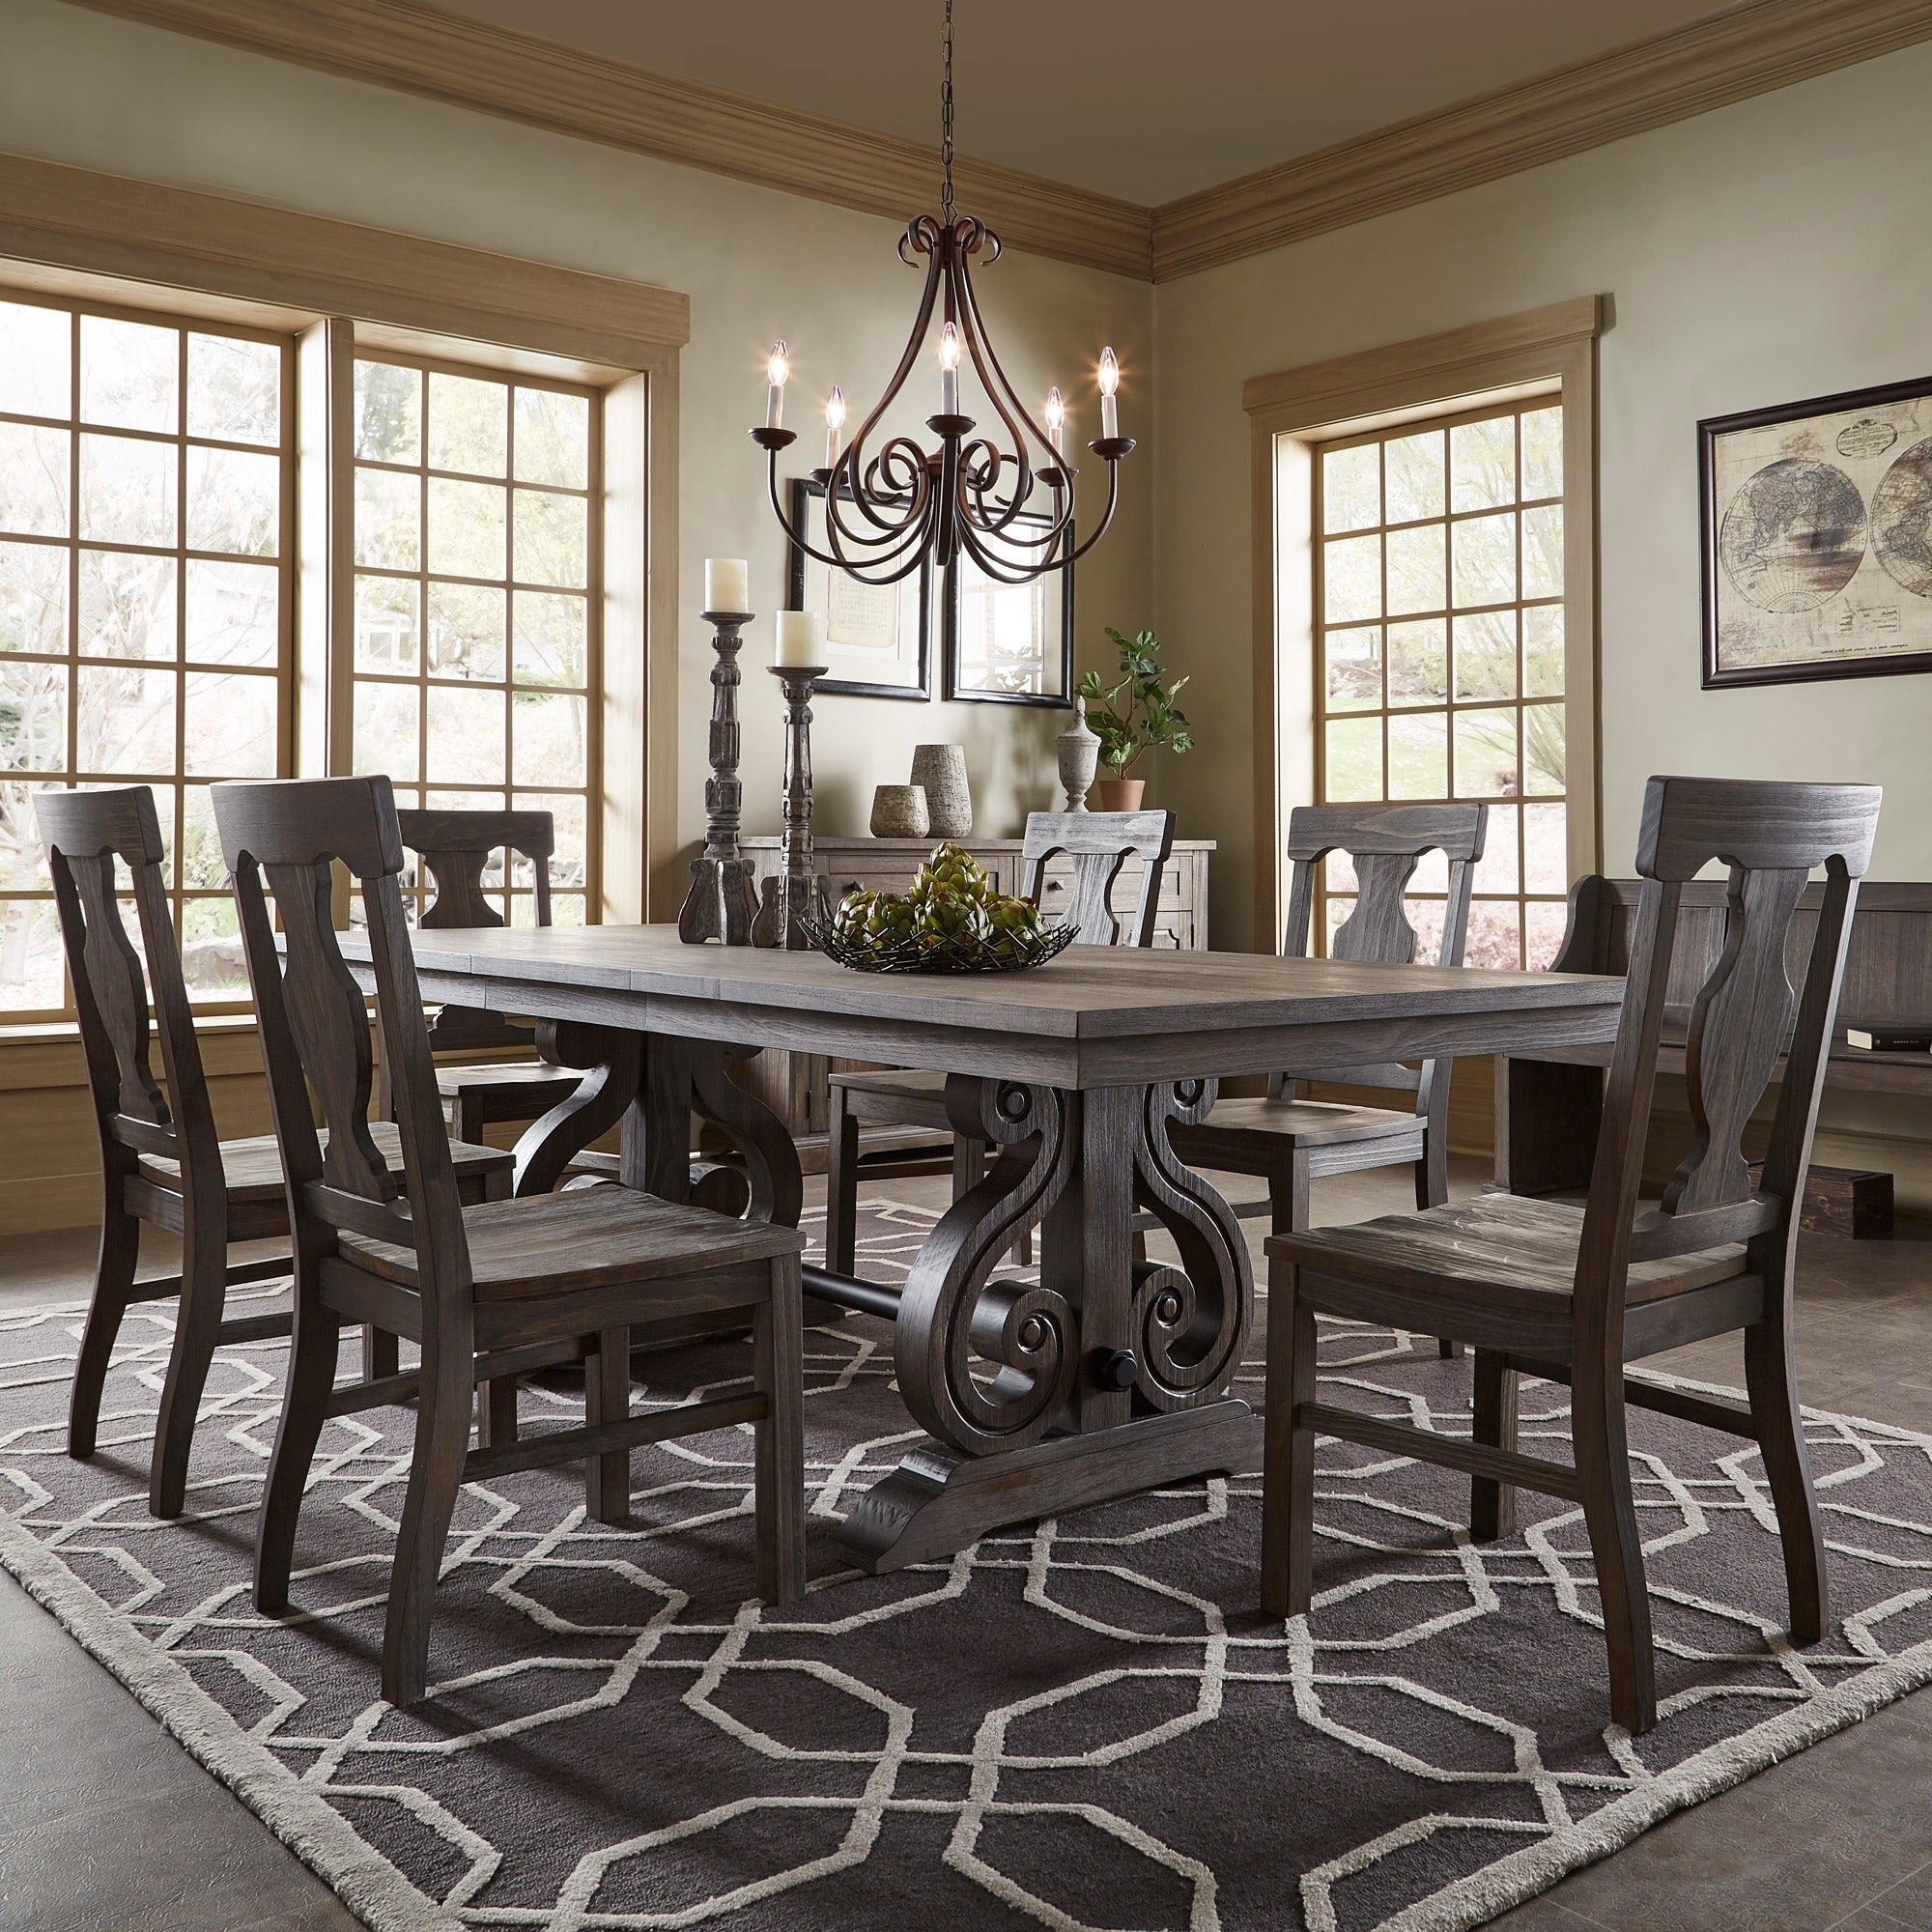 buy kitchen dining room tables online at overstock com our best rh overstock com upholstered dining room chairs overstock Overstock Dining Room Chairs